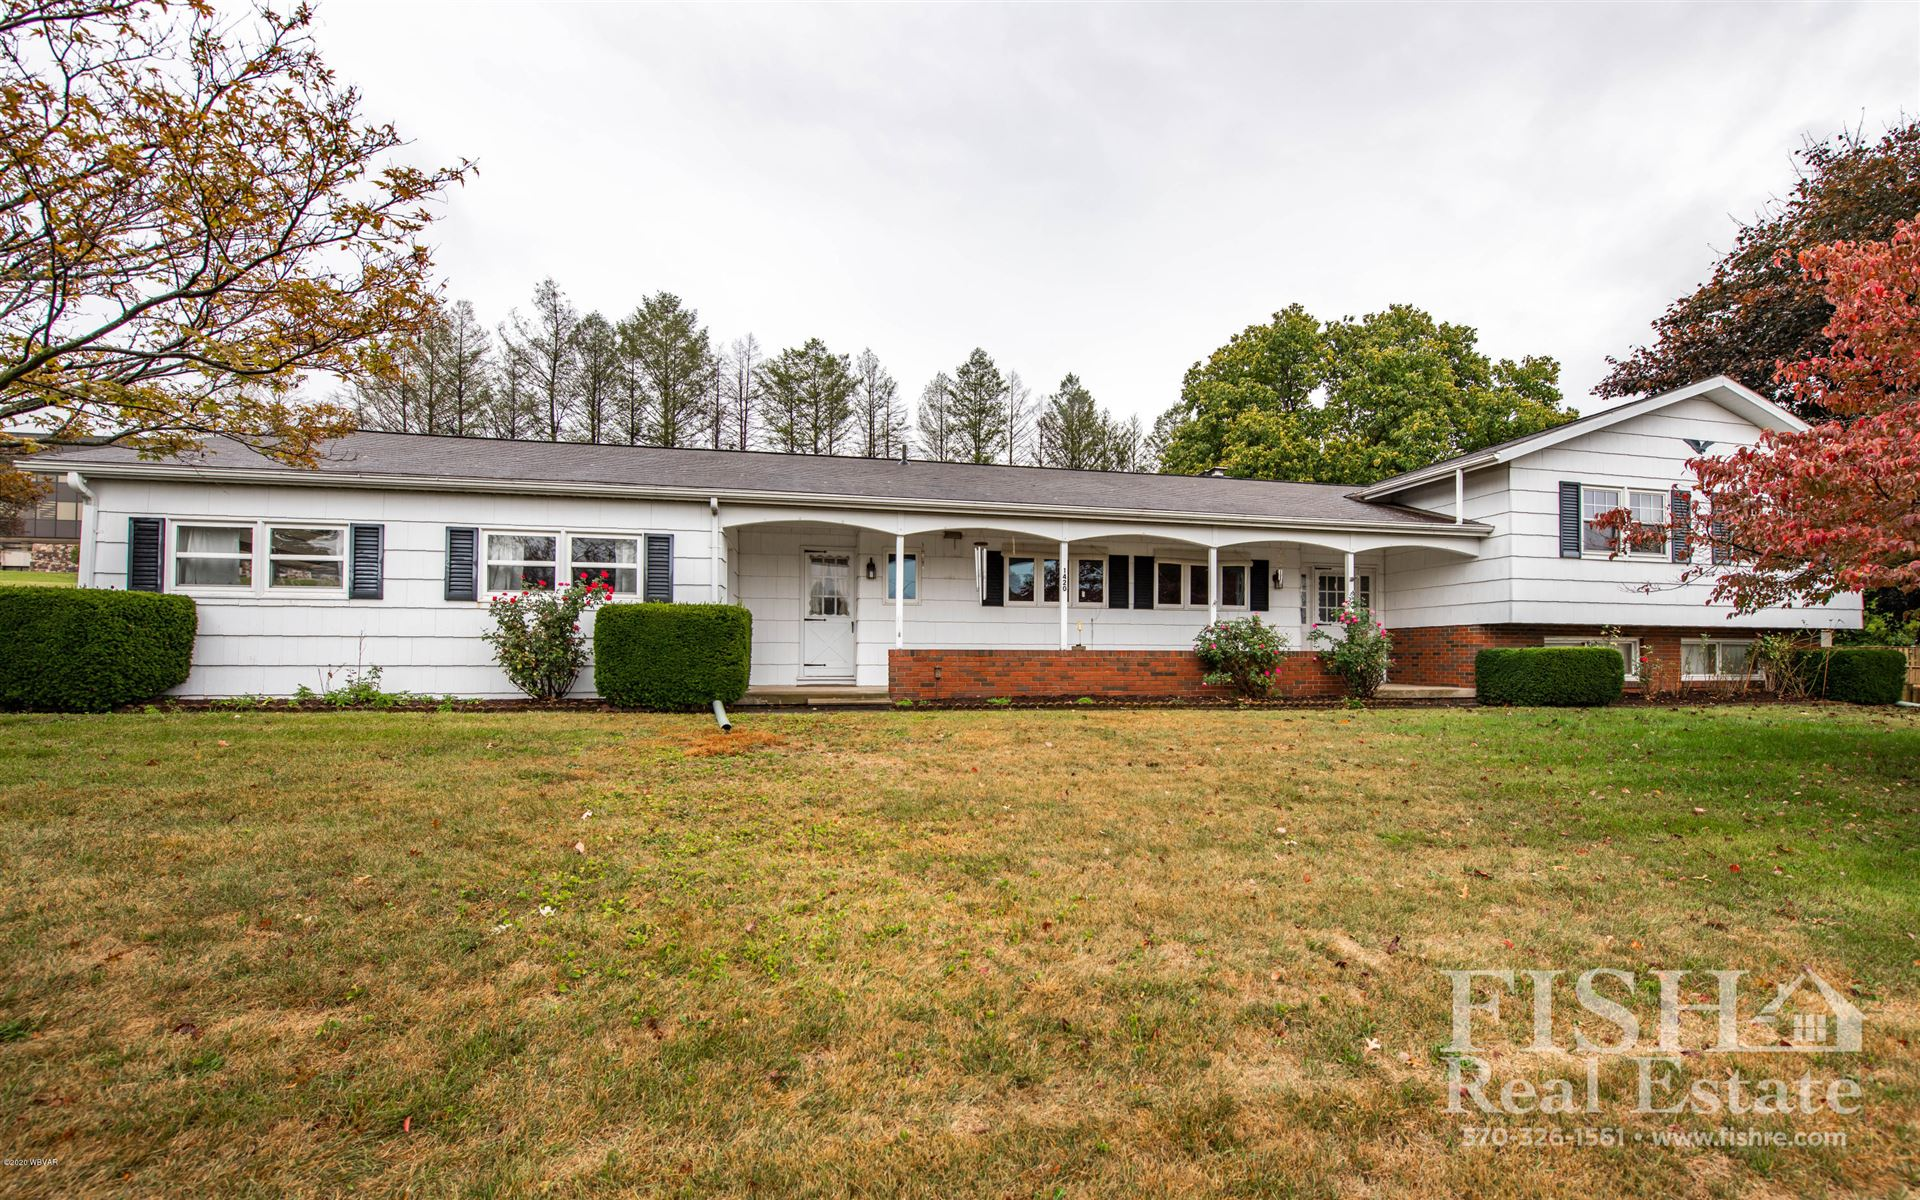 1420 SYCAMORE ROAD, Montoursville, PA 17754 - #: WB-91236